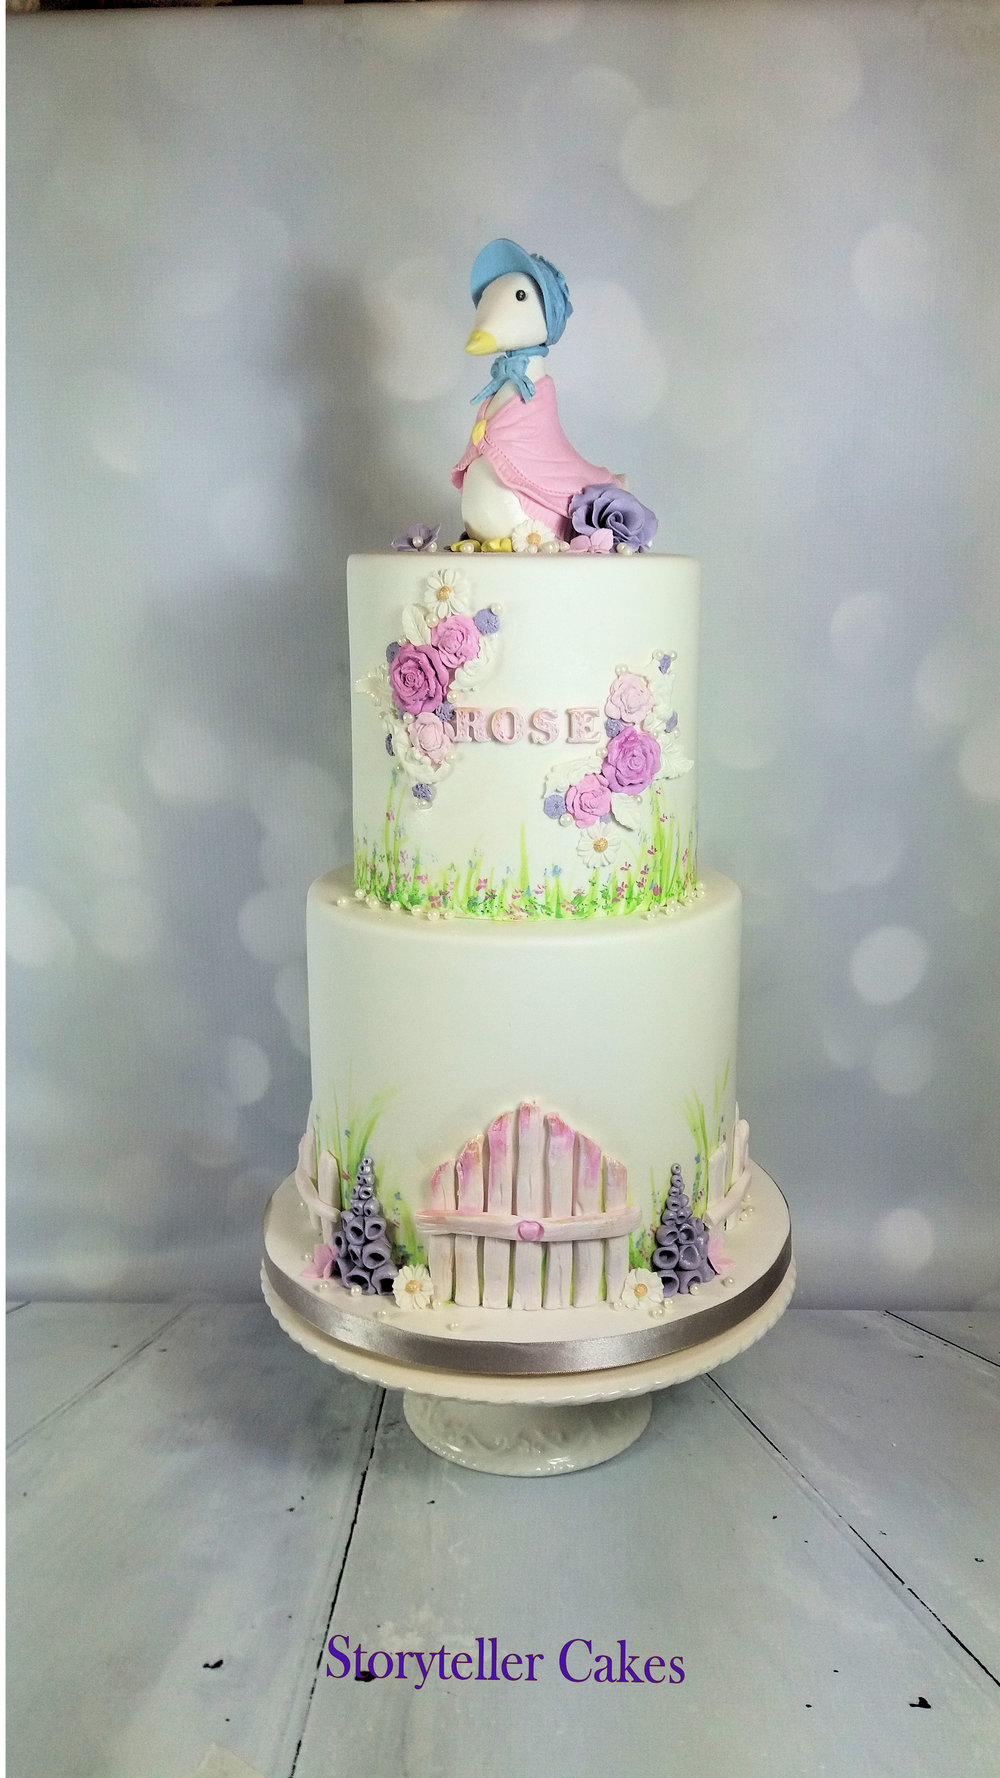 Jemima Puddle Duck Beatrix potter peter rabbit cake 4.jpg